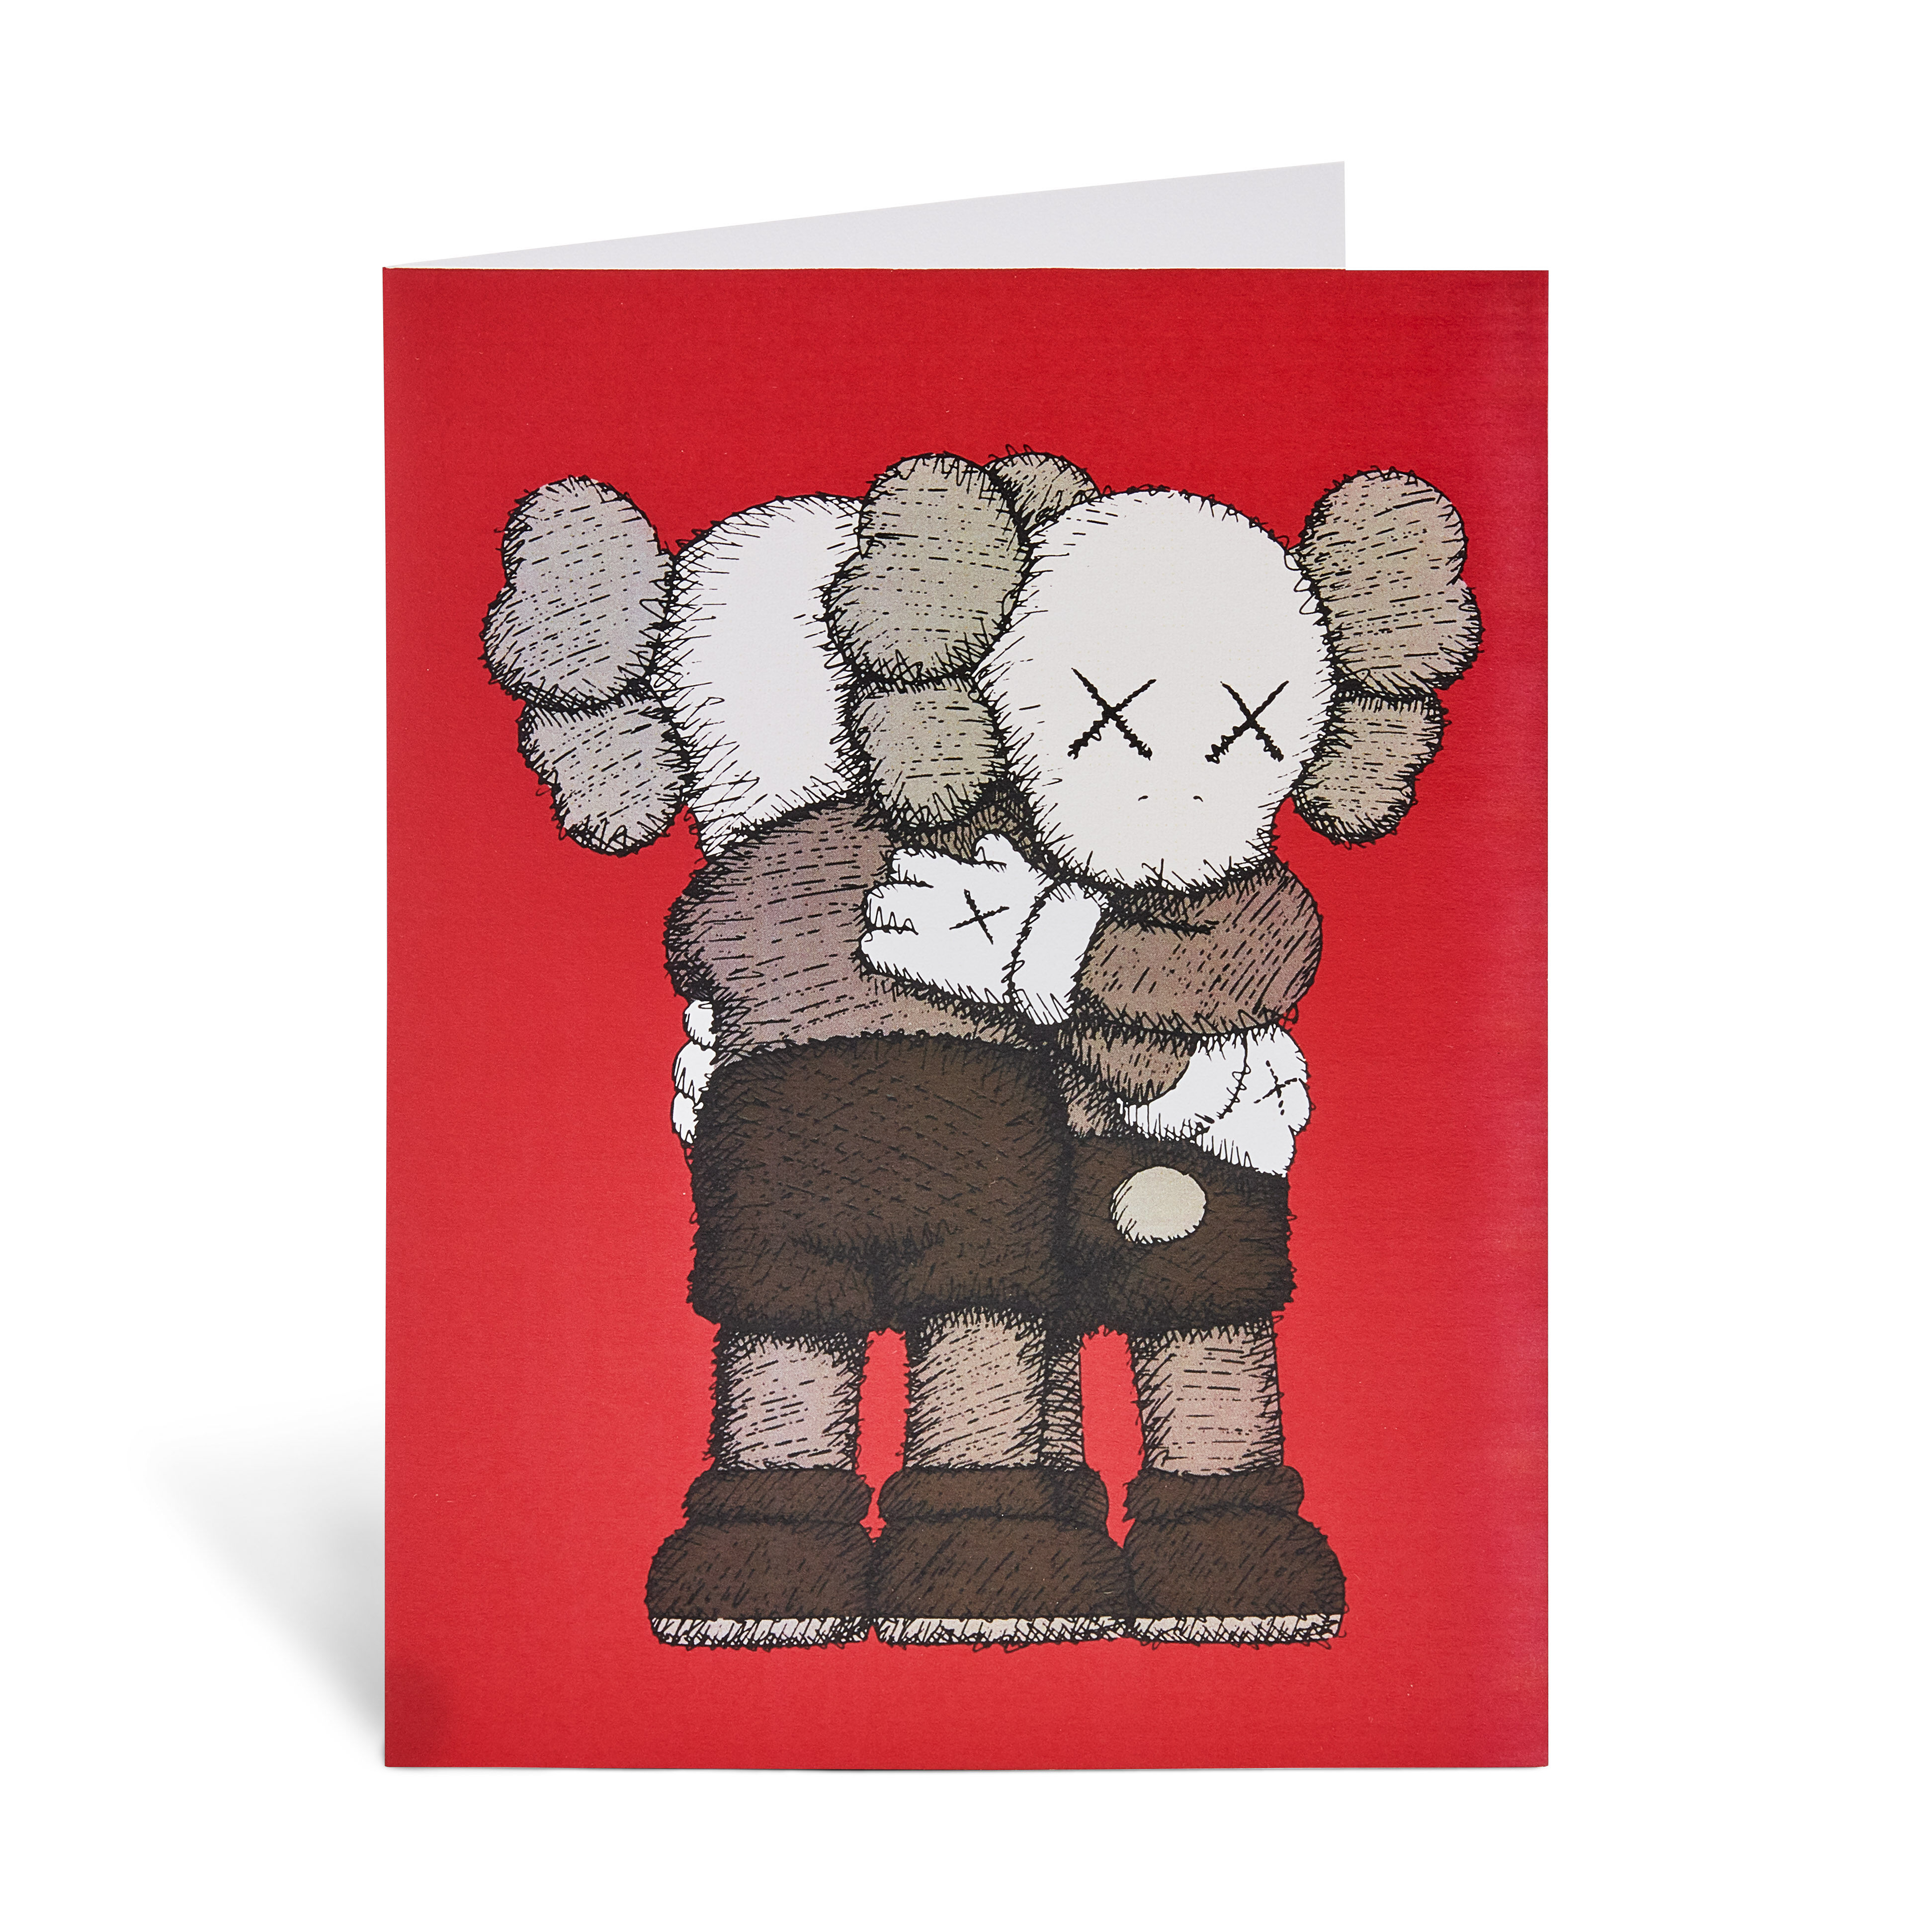 highbrow holiday cards home museum of modern art and museums ...